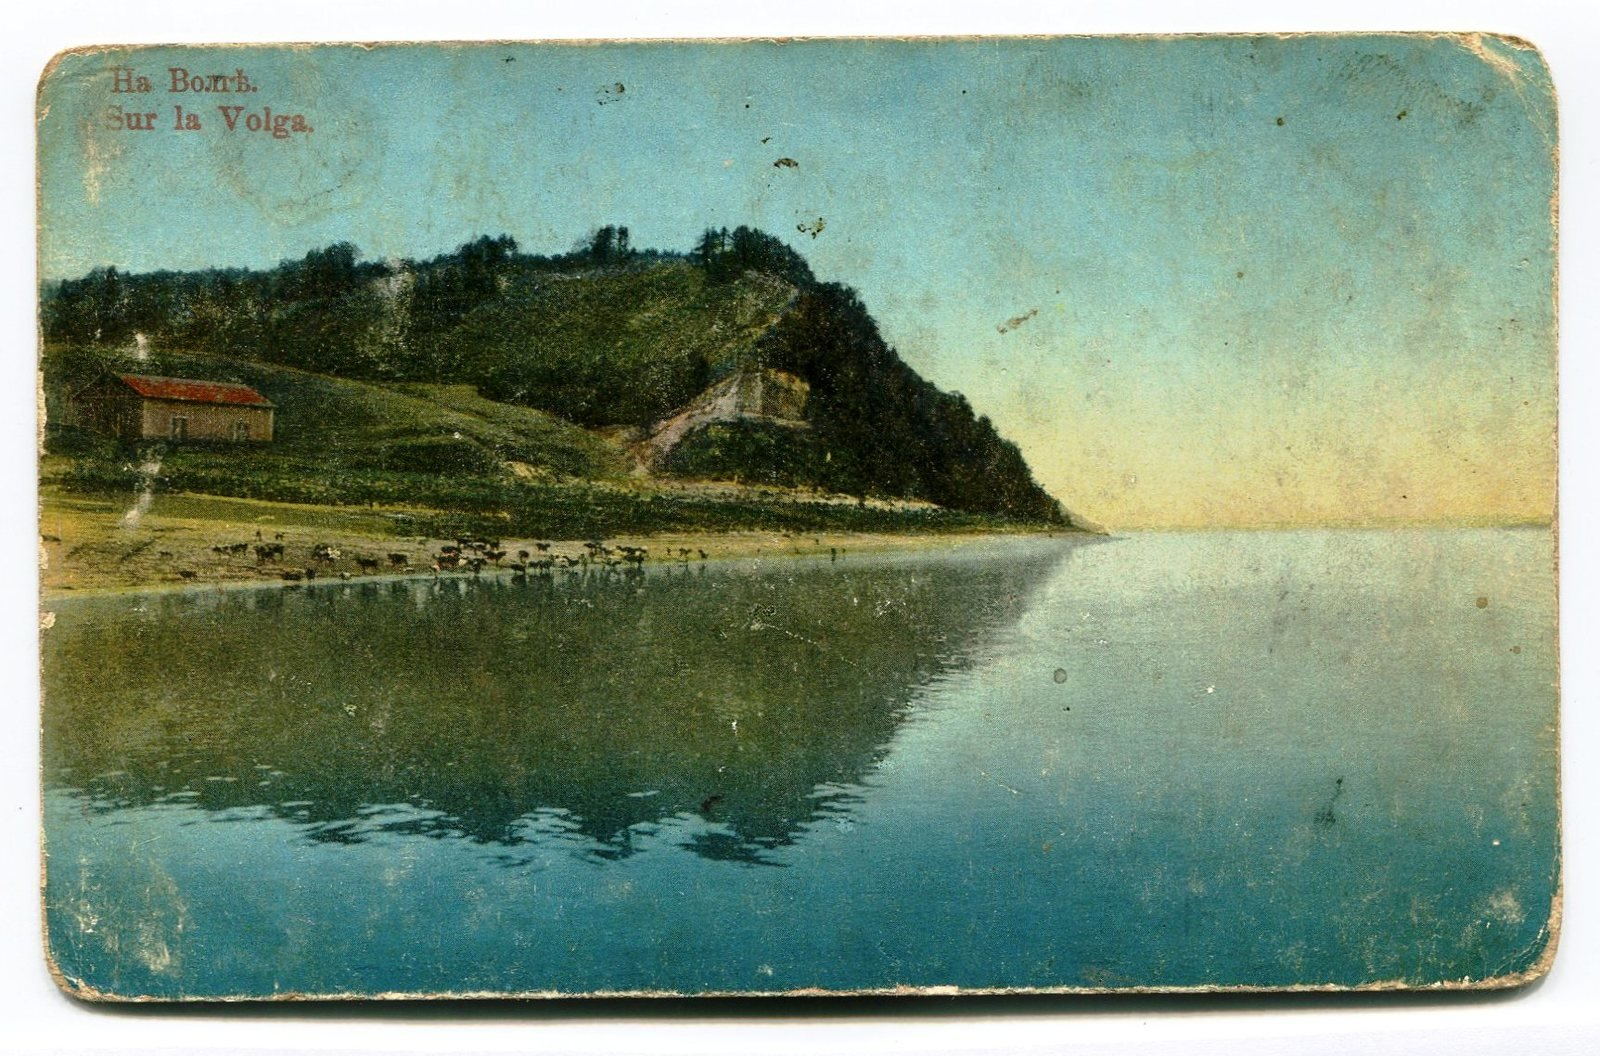 Postcard of a river/cliff scene along the Wolga river, undated, Europeana 1914-1918 / Rada Čopi, CC BY-SA